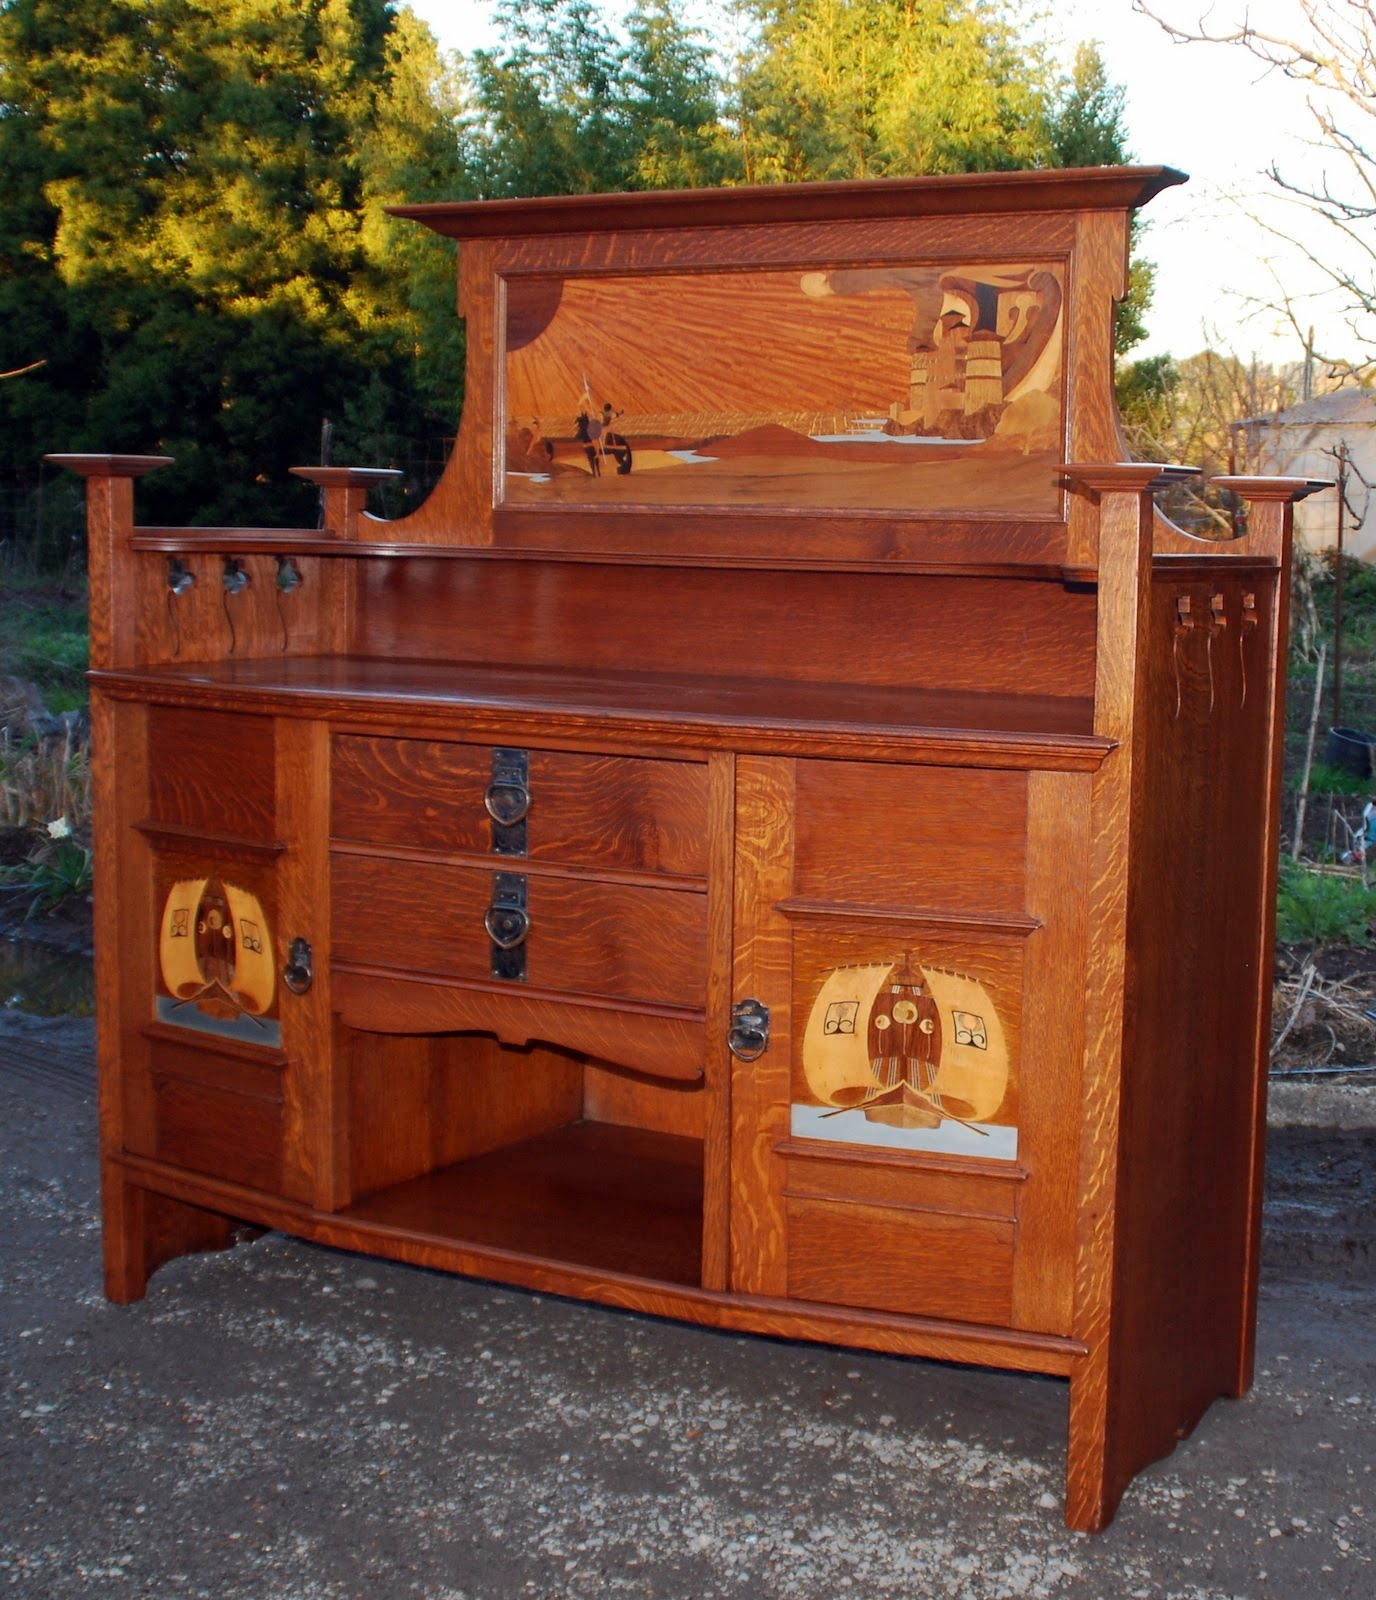 Antique arts and crafts furniture - Antique Arts And Crafts Furniture Scottish Arts Crafts Inlaid Oak Sideboard